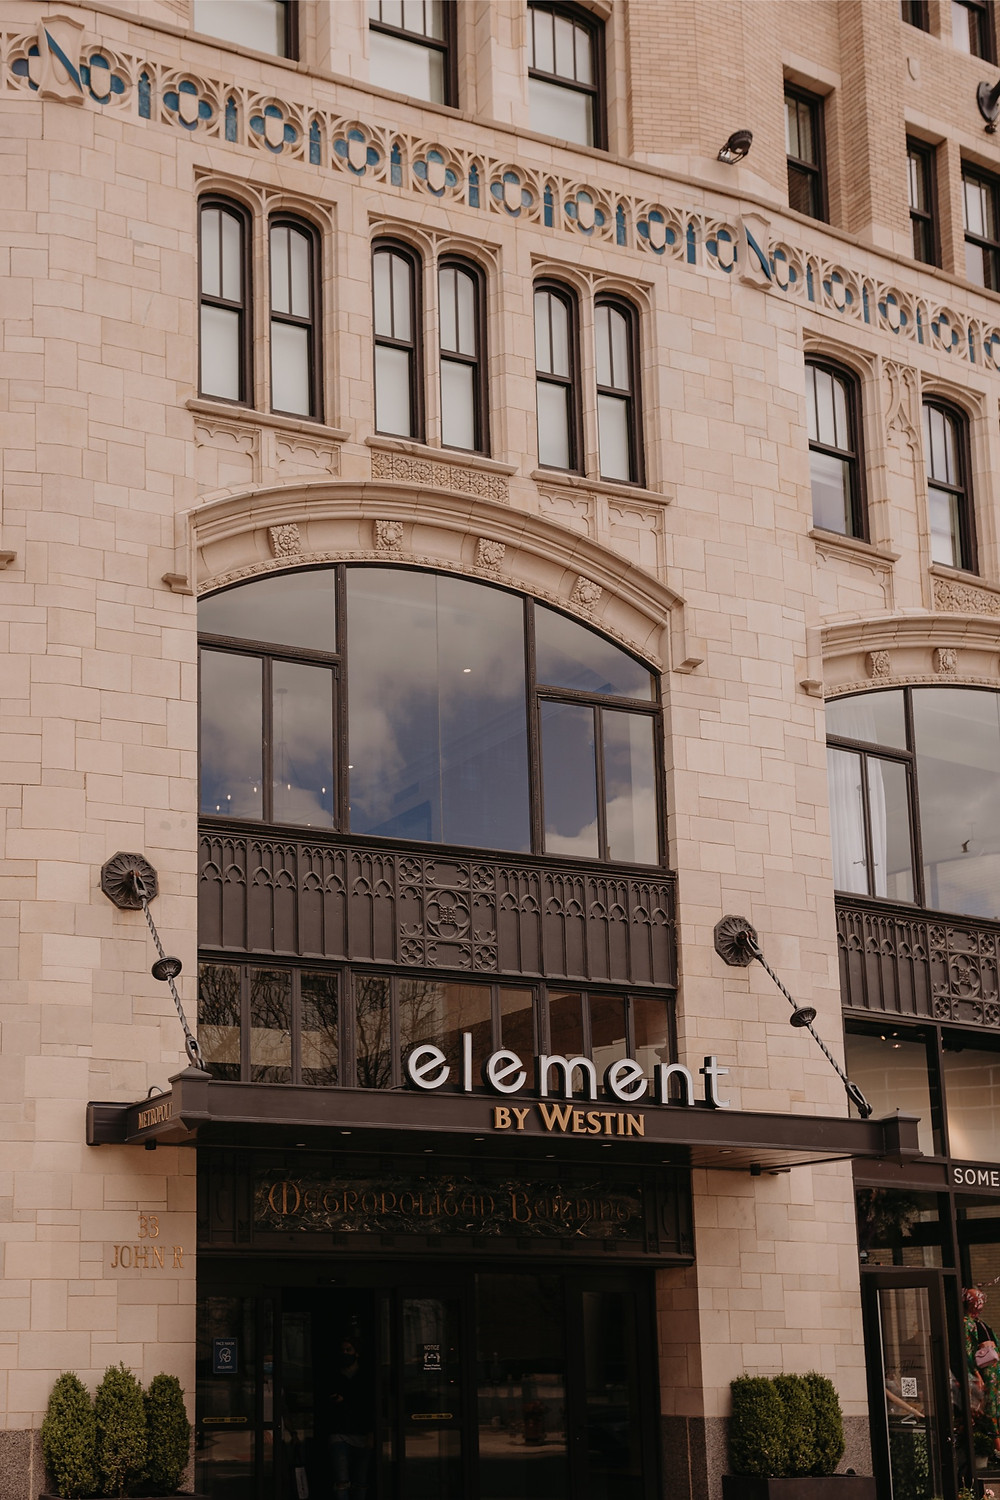 Element Detroit by Westin Hotel in The Metropolitan Building Detroit Michigan.